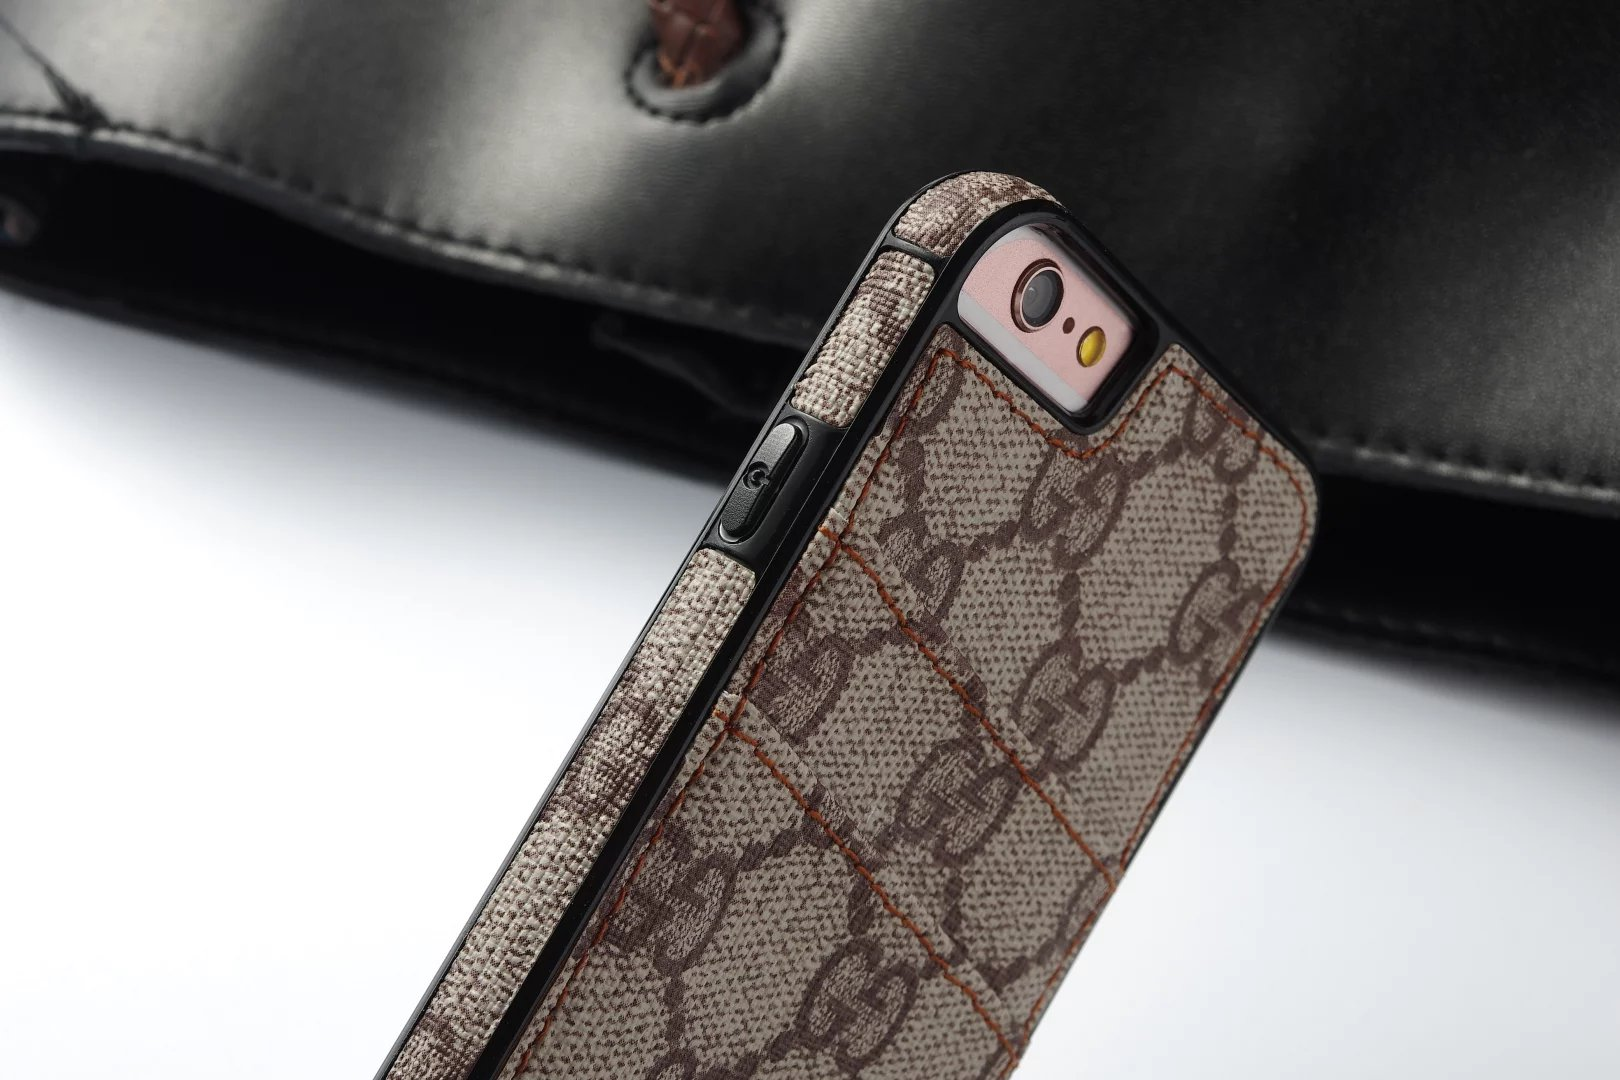 iphone hülle designen individuelle iphone hülle Gucci iphone 8 hüllen gute iphone 8 hülle iphone hülle geldbör8 iphone 8 das neue iphone 8 preis was8rdichte iphone hülle handyhülle iphone 8 c